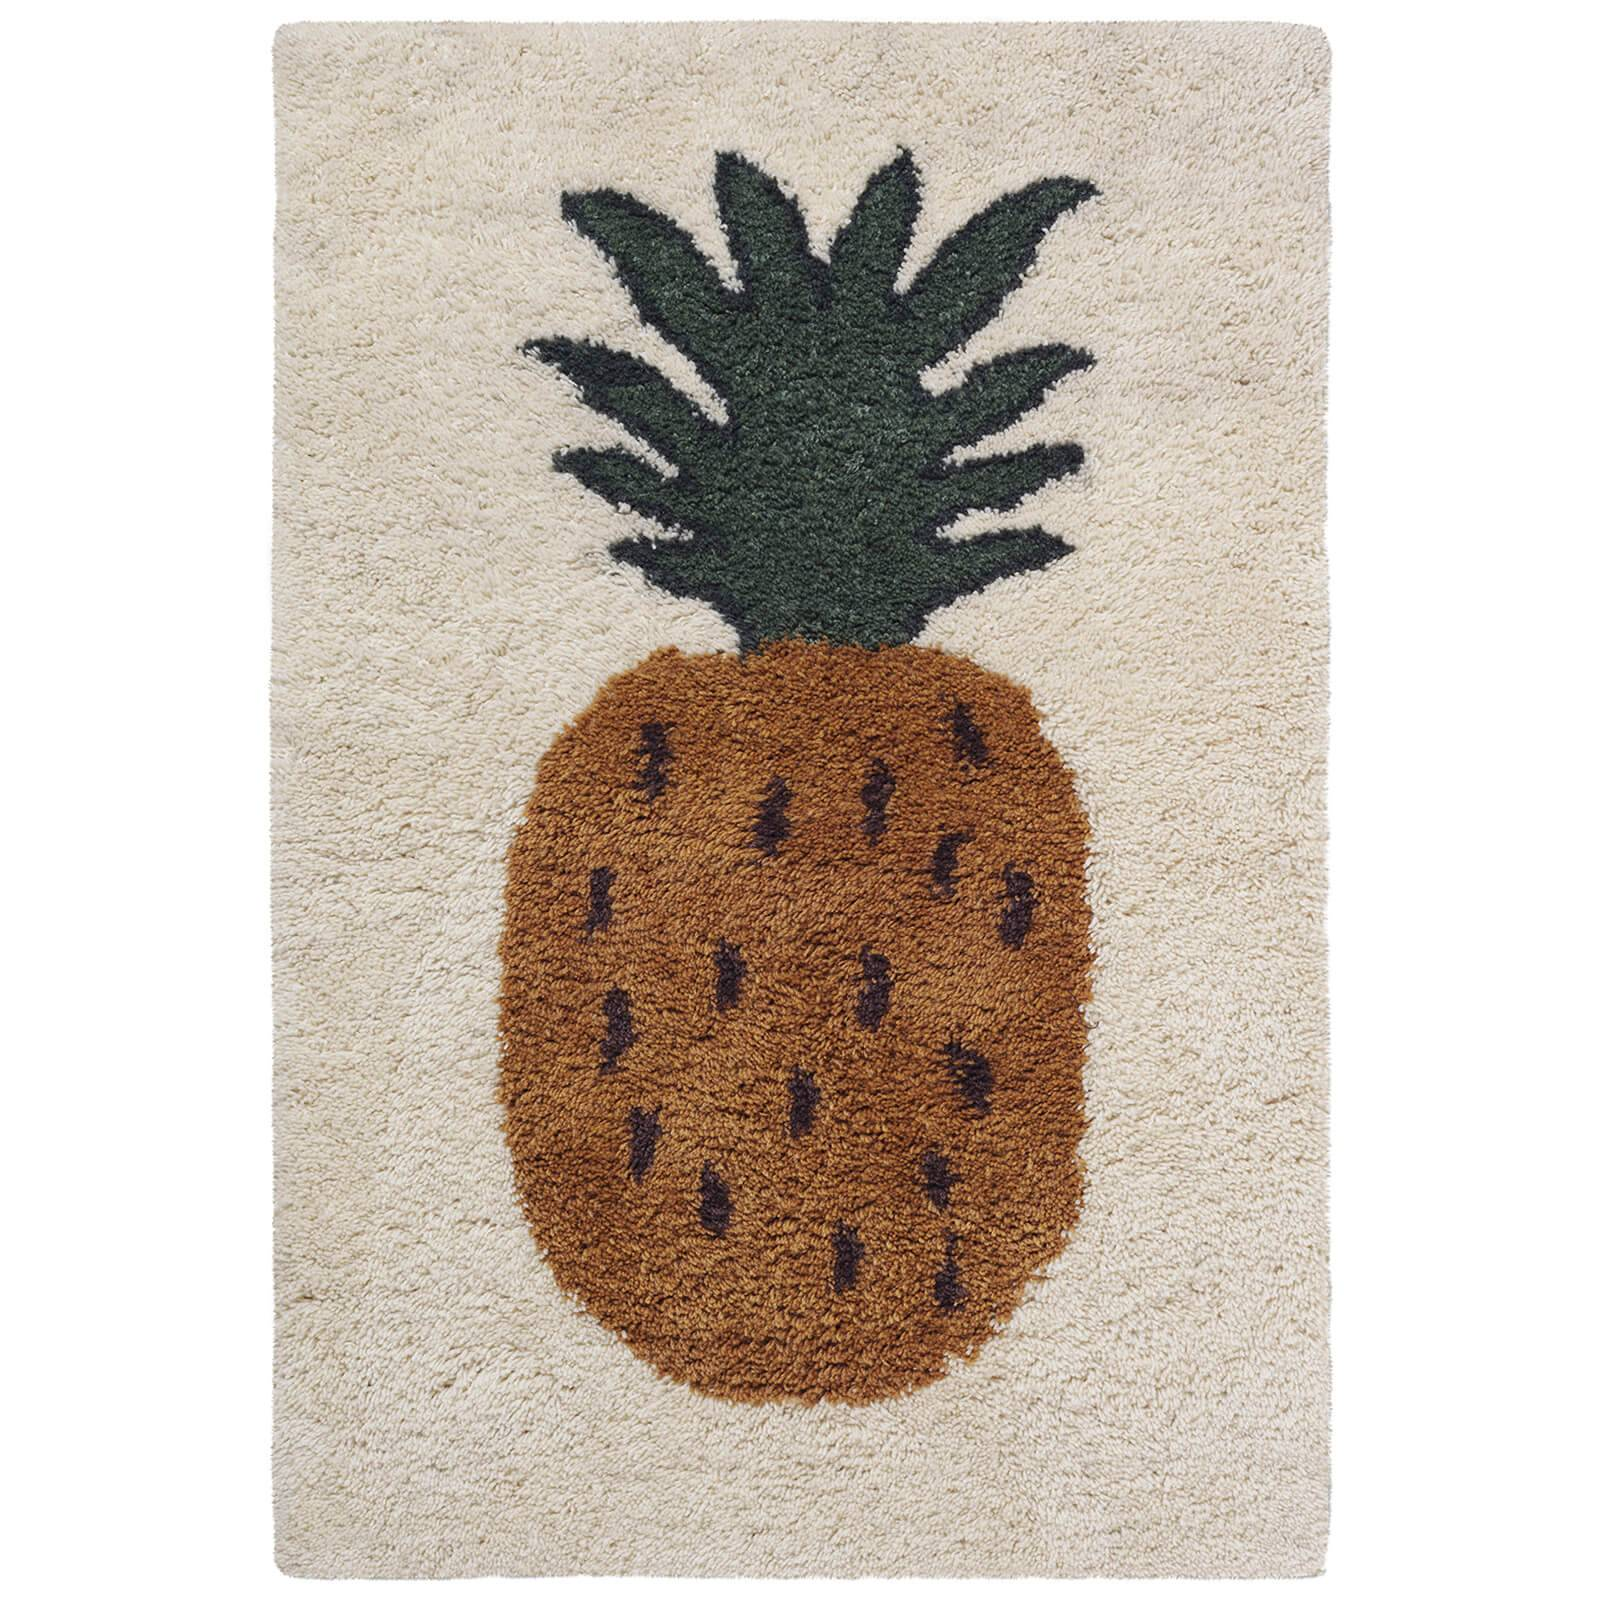 Ferm Living Fruiticana Tufted Pineapple Rug - Small